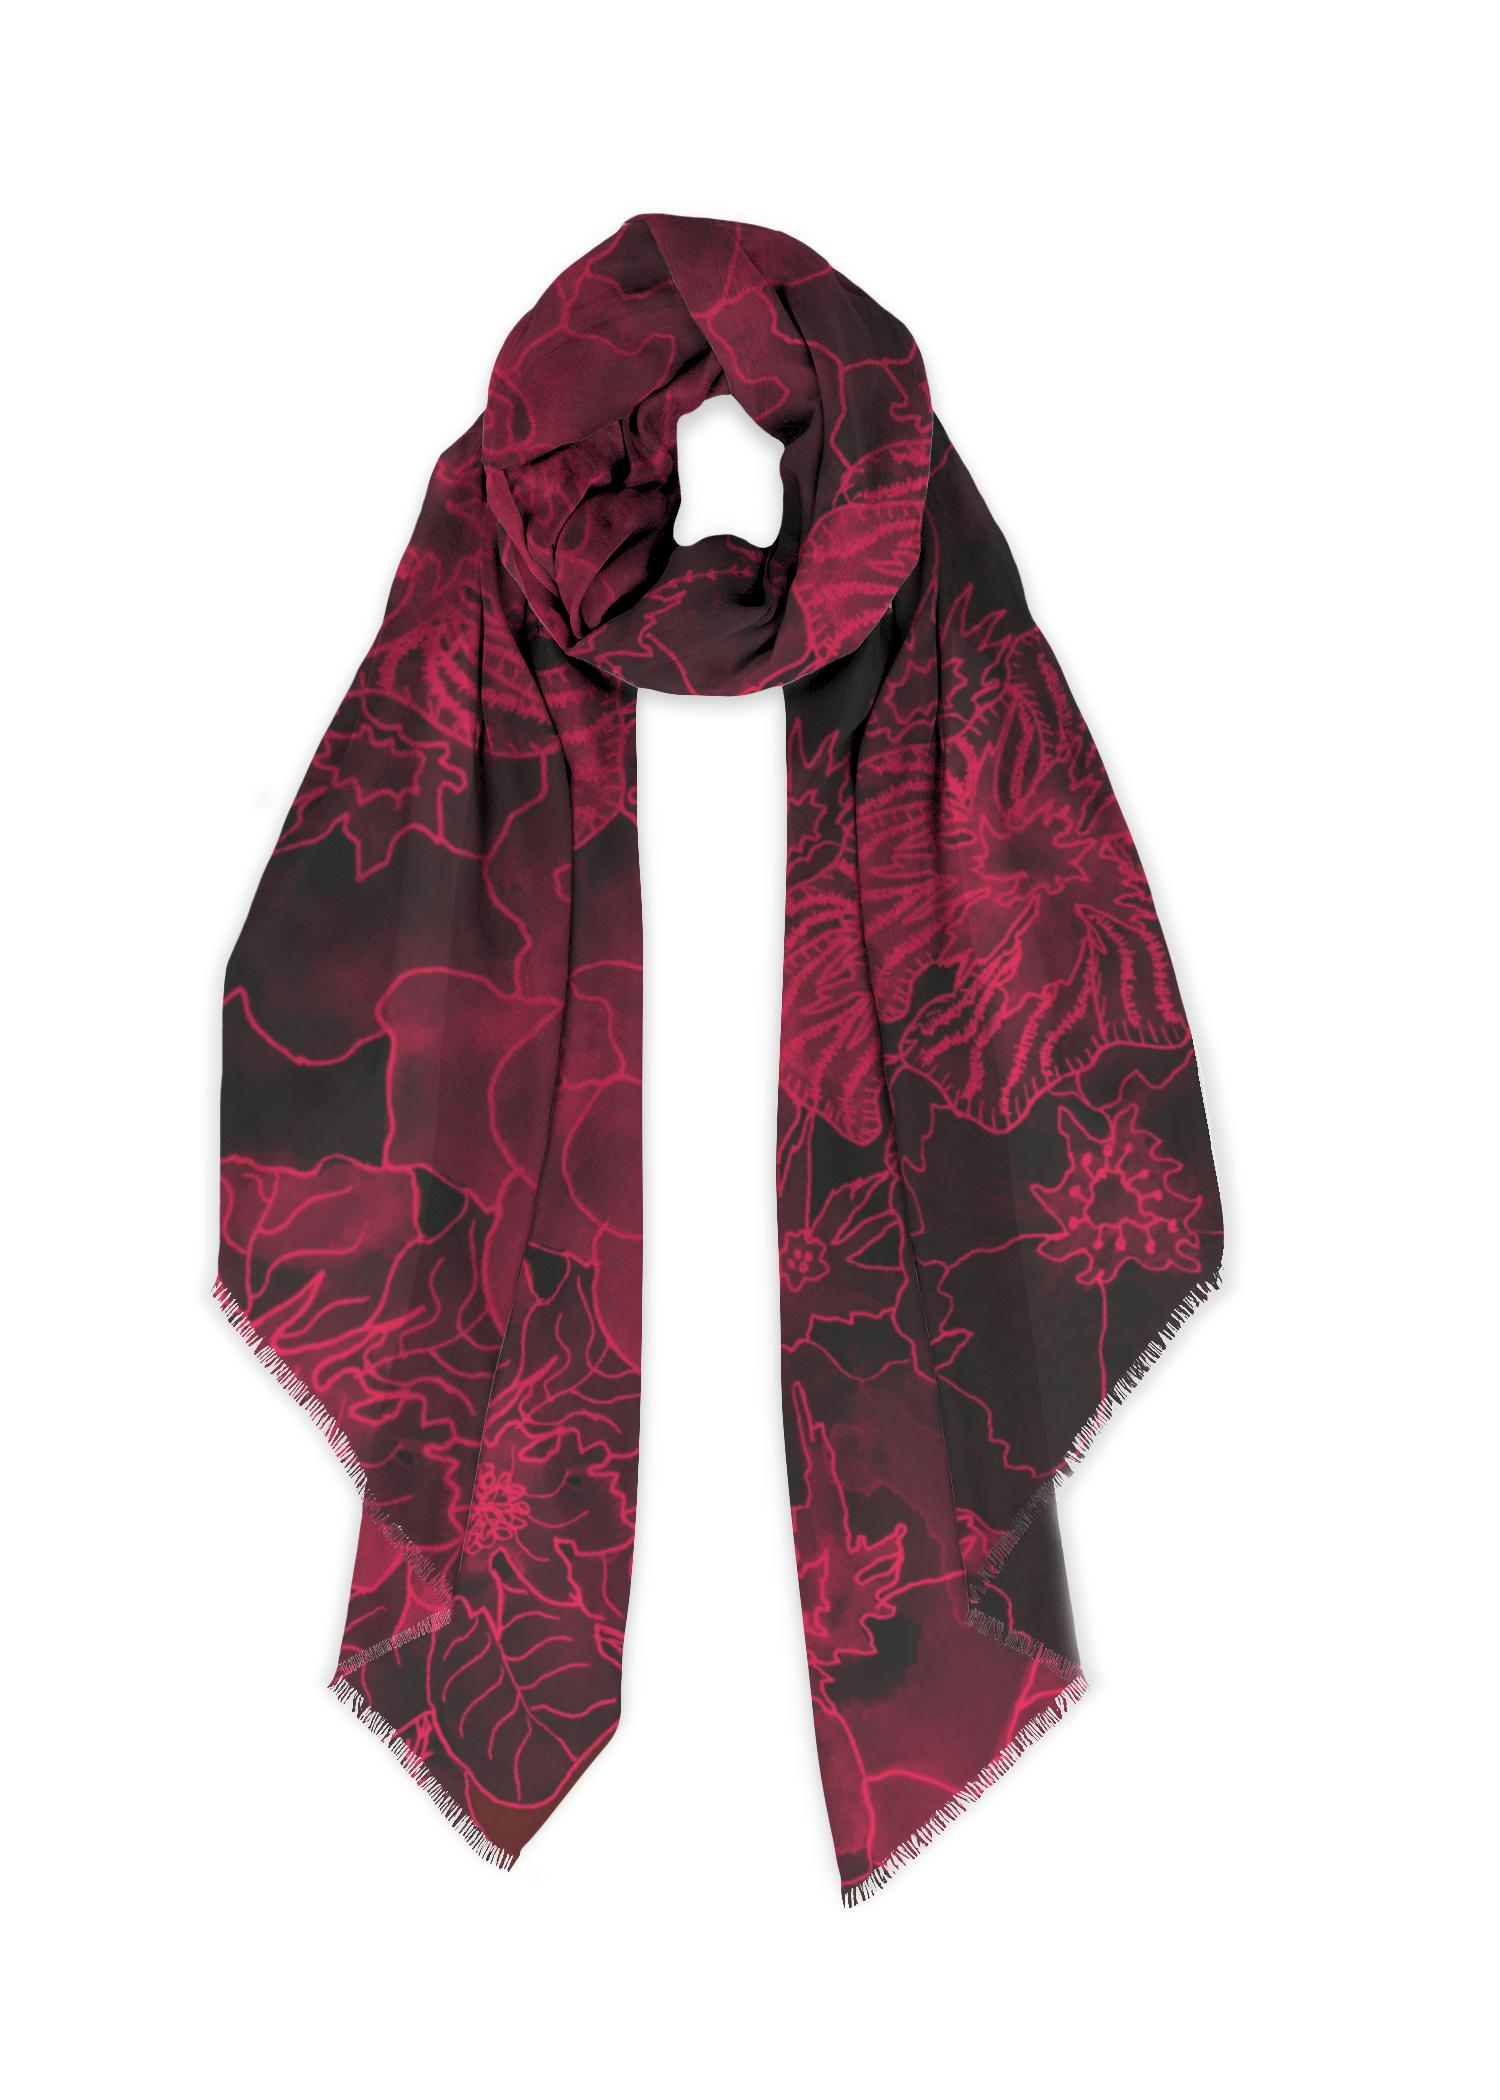 Abstract Mandala Cashmere Feel Scarves with Tassels for Men Women